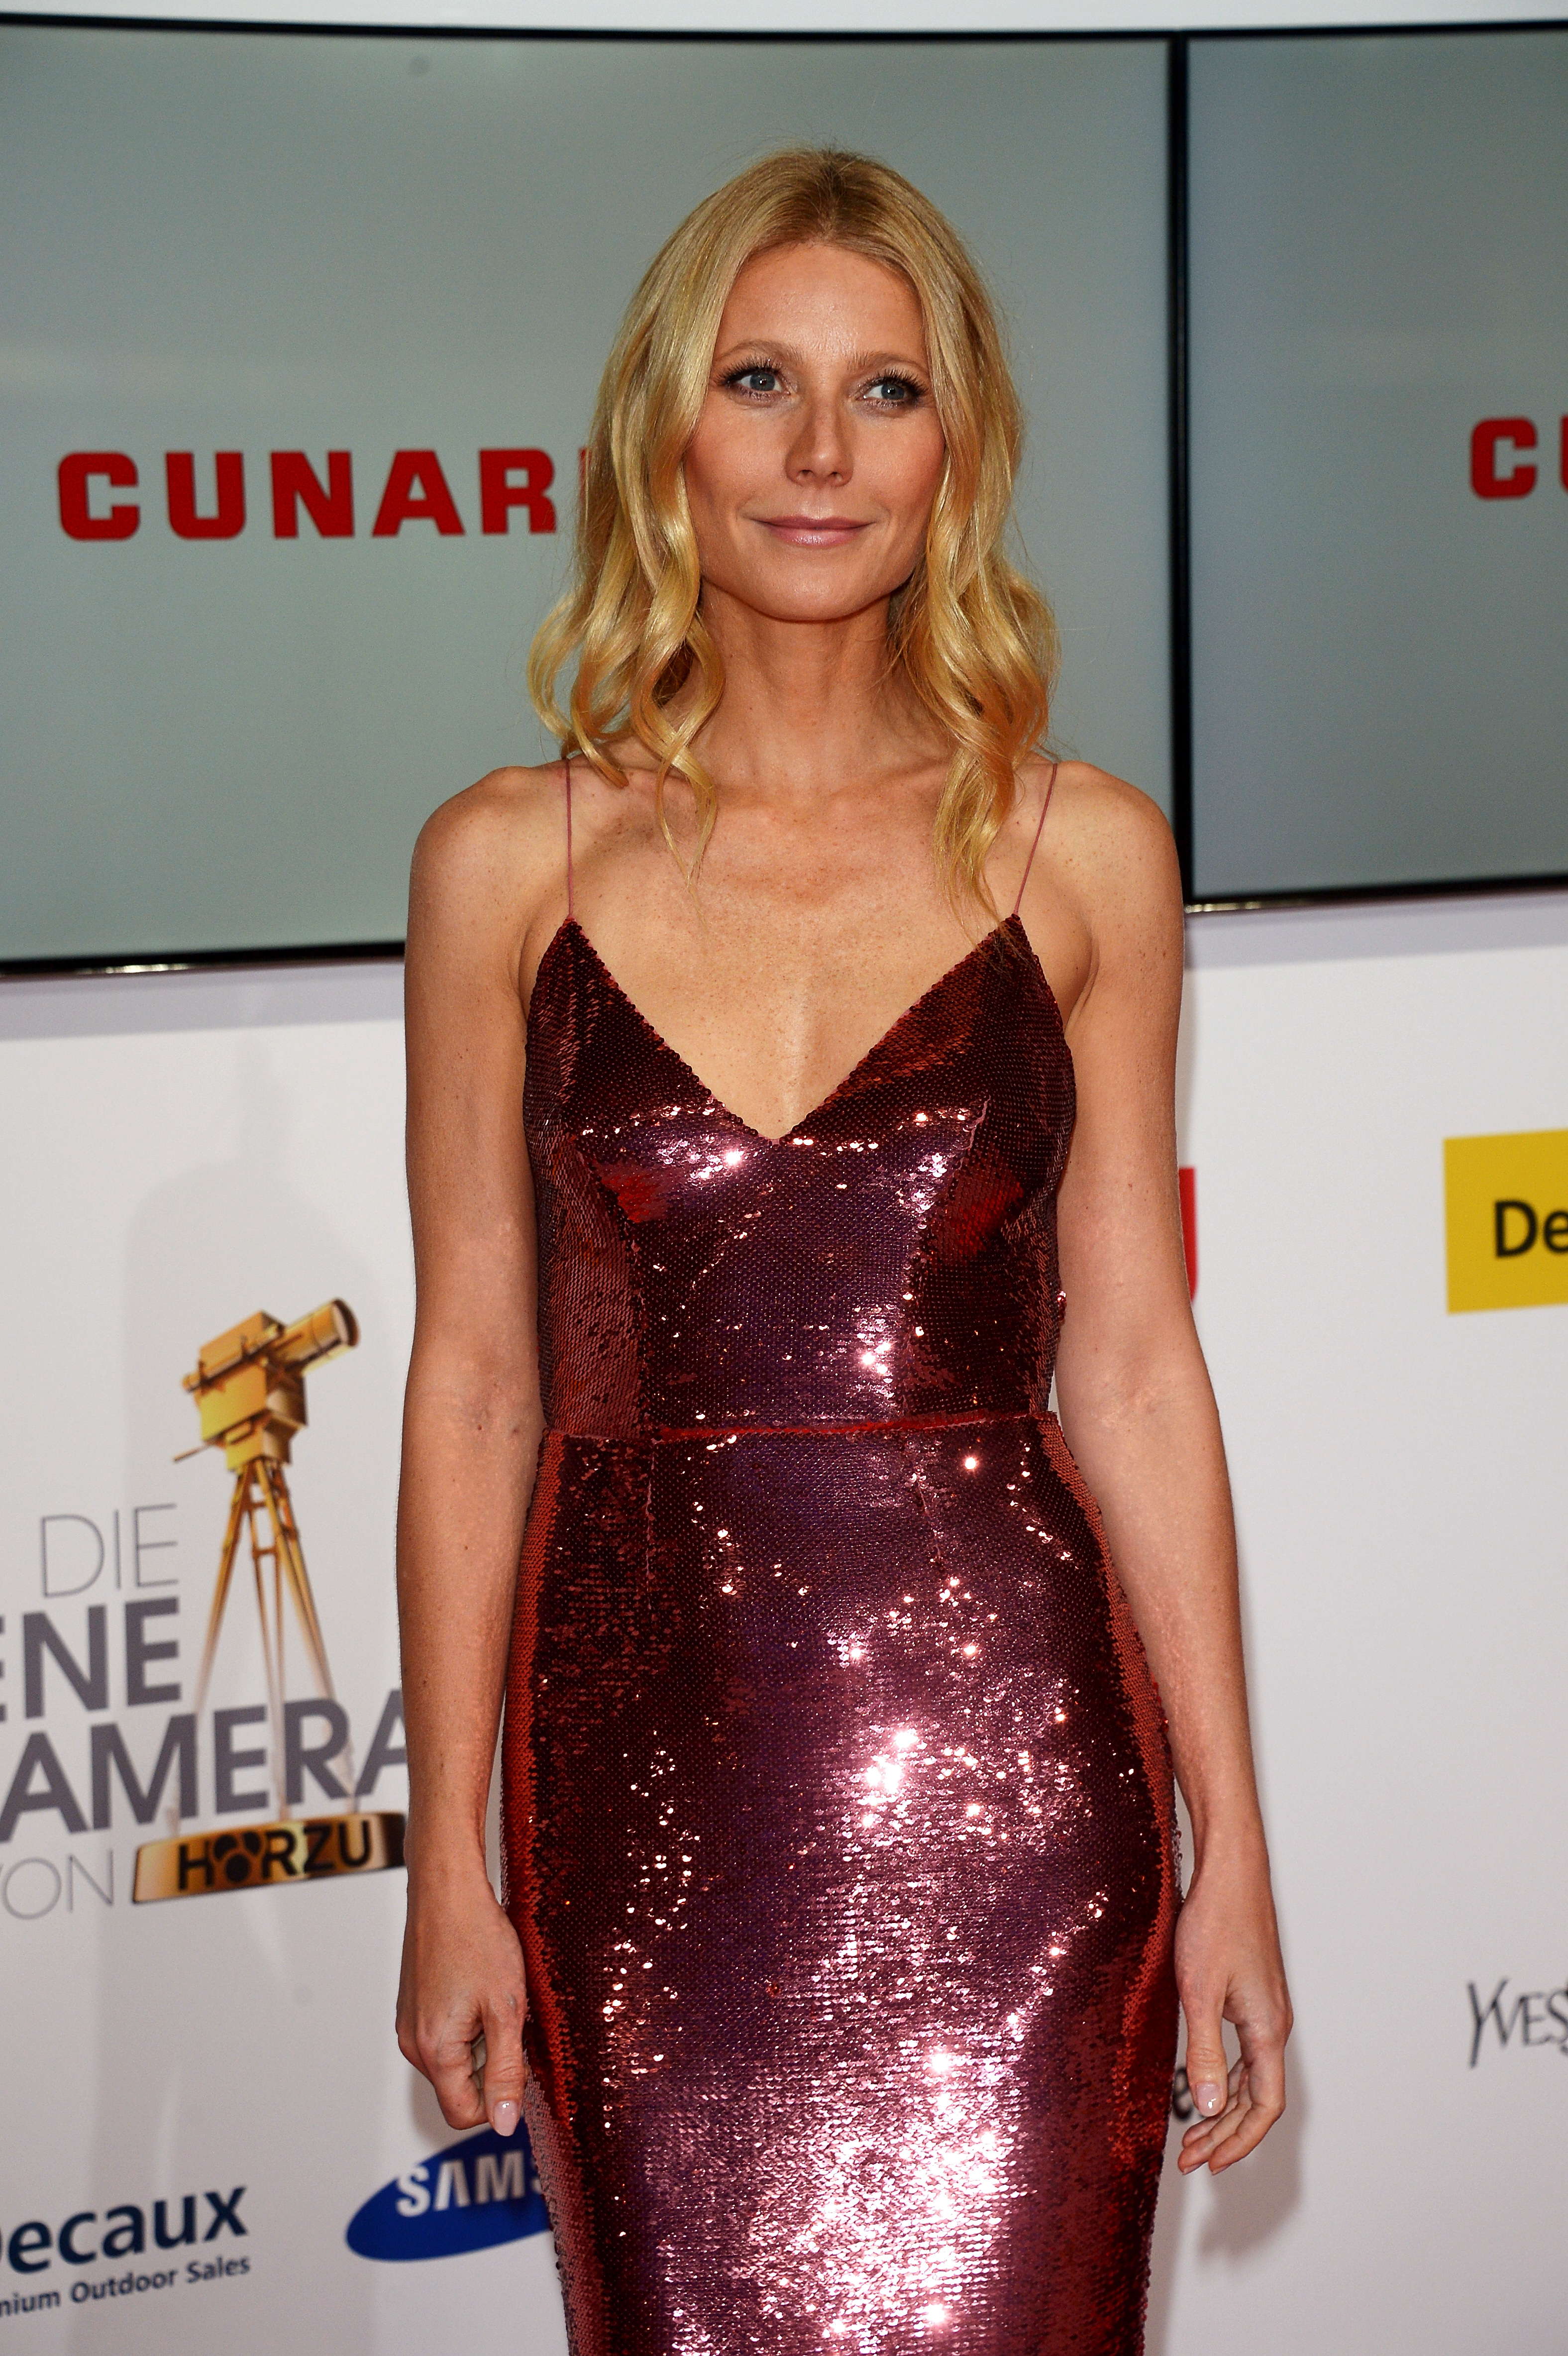 Gwyneth Paltrow attends the 49th Golden Camera Awards at Tempelhof Airport in Berlin on Feb. 1, 2014